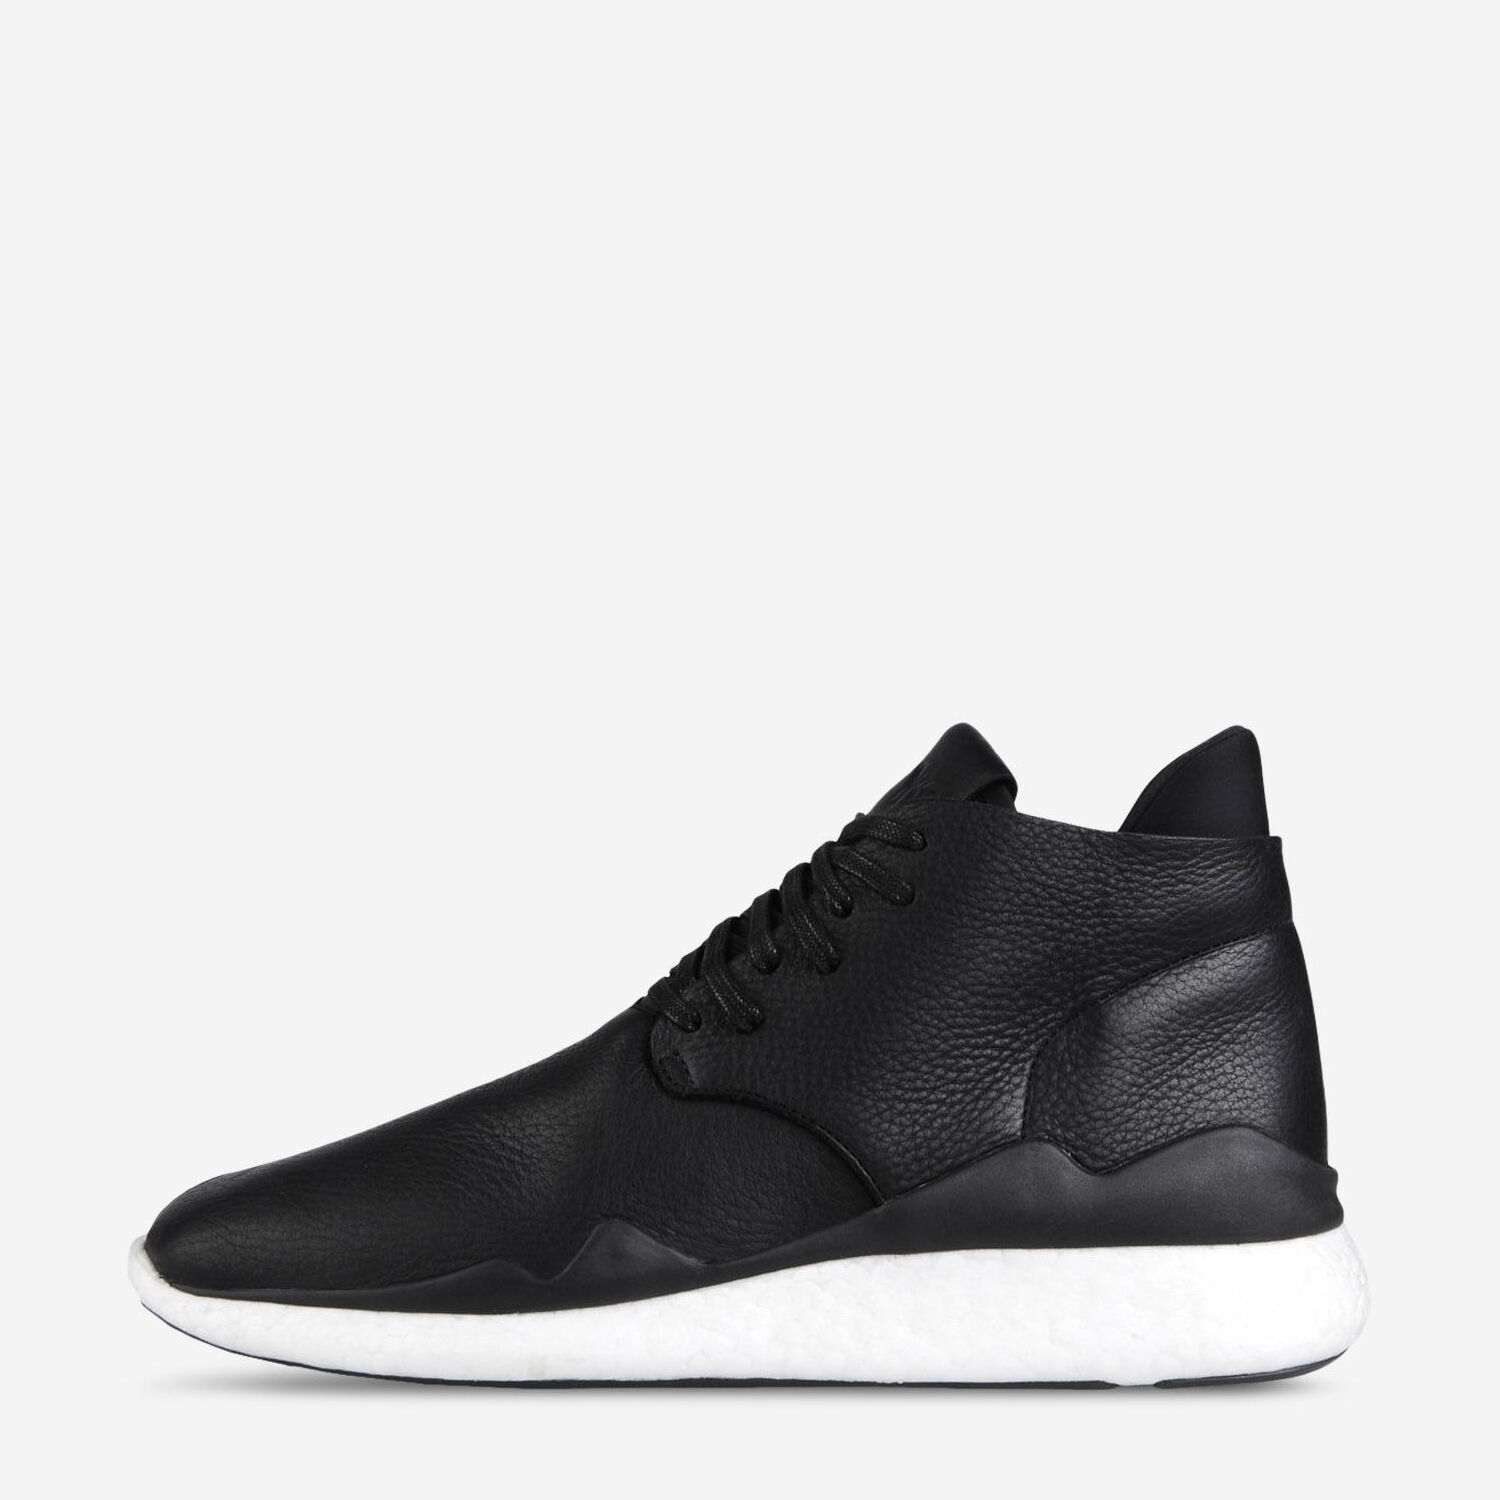 Adidas Y-3 Yohji Yamamoto Desert Boost Leather S83260 Limited Edition